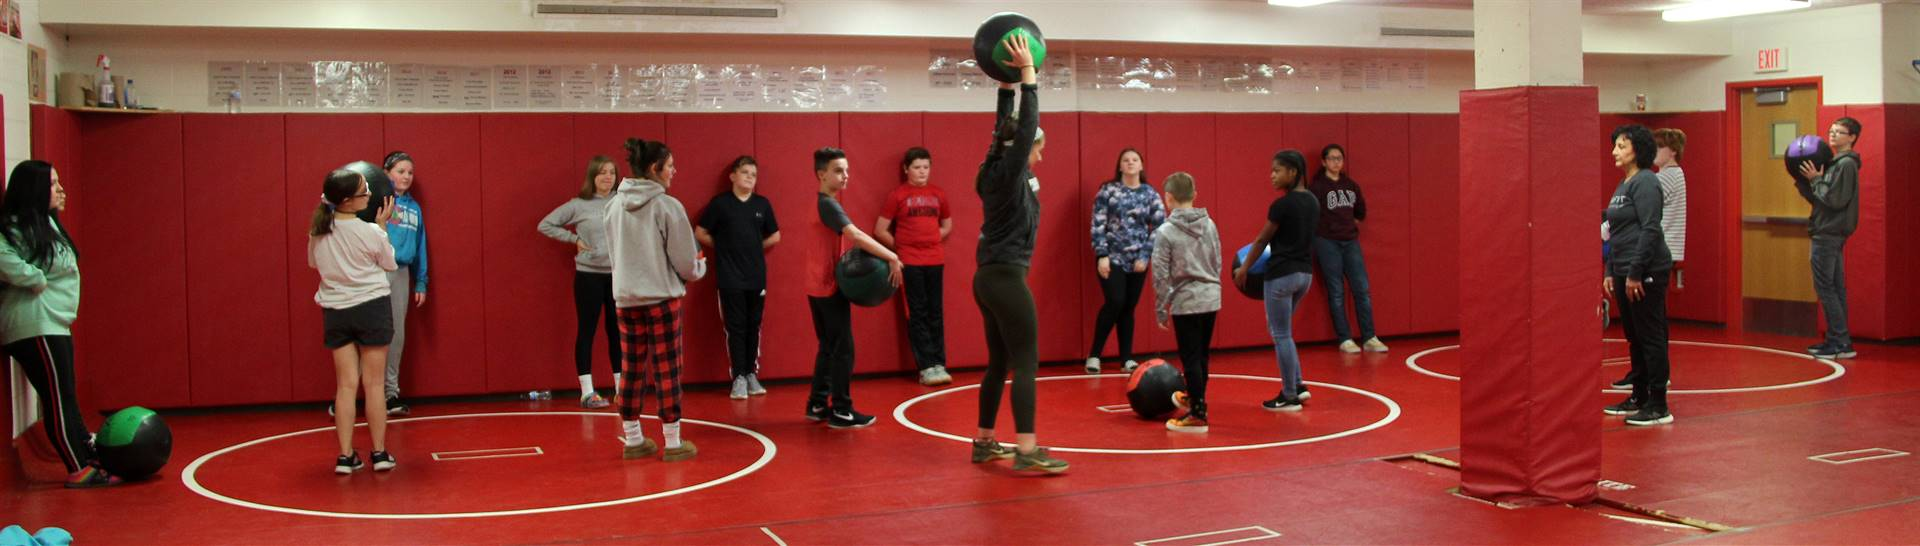 students taking part in cross fit activity